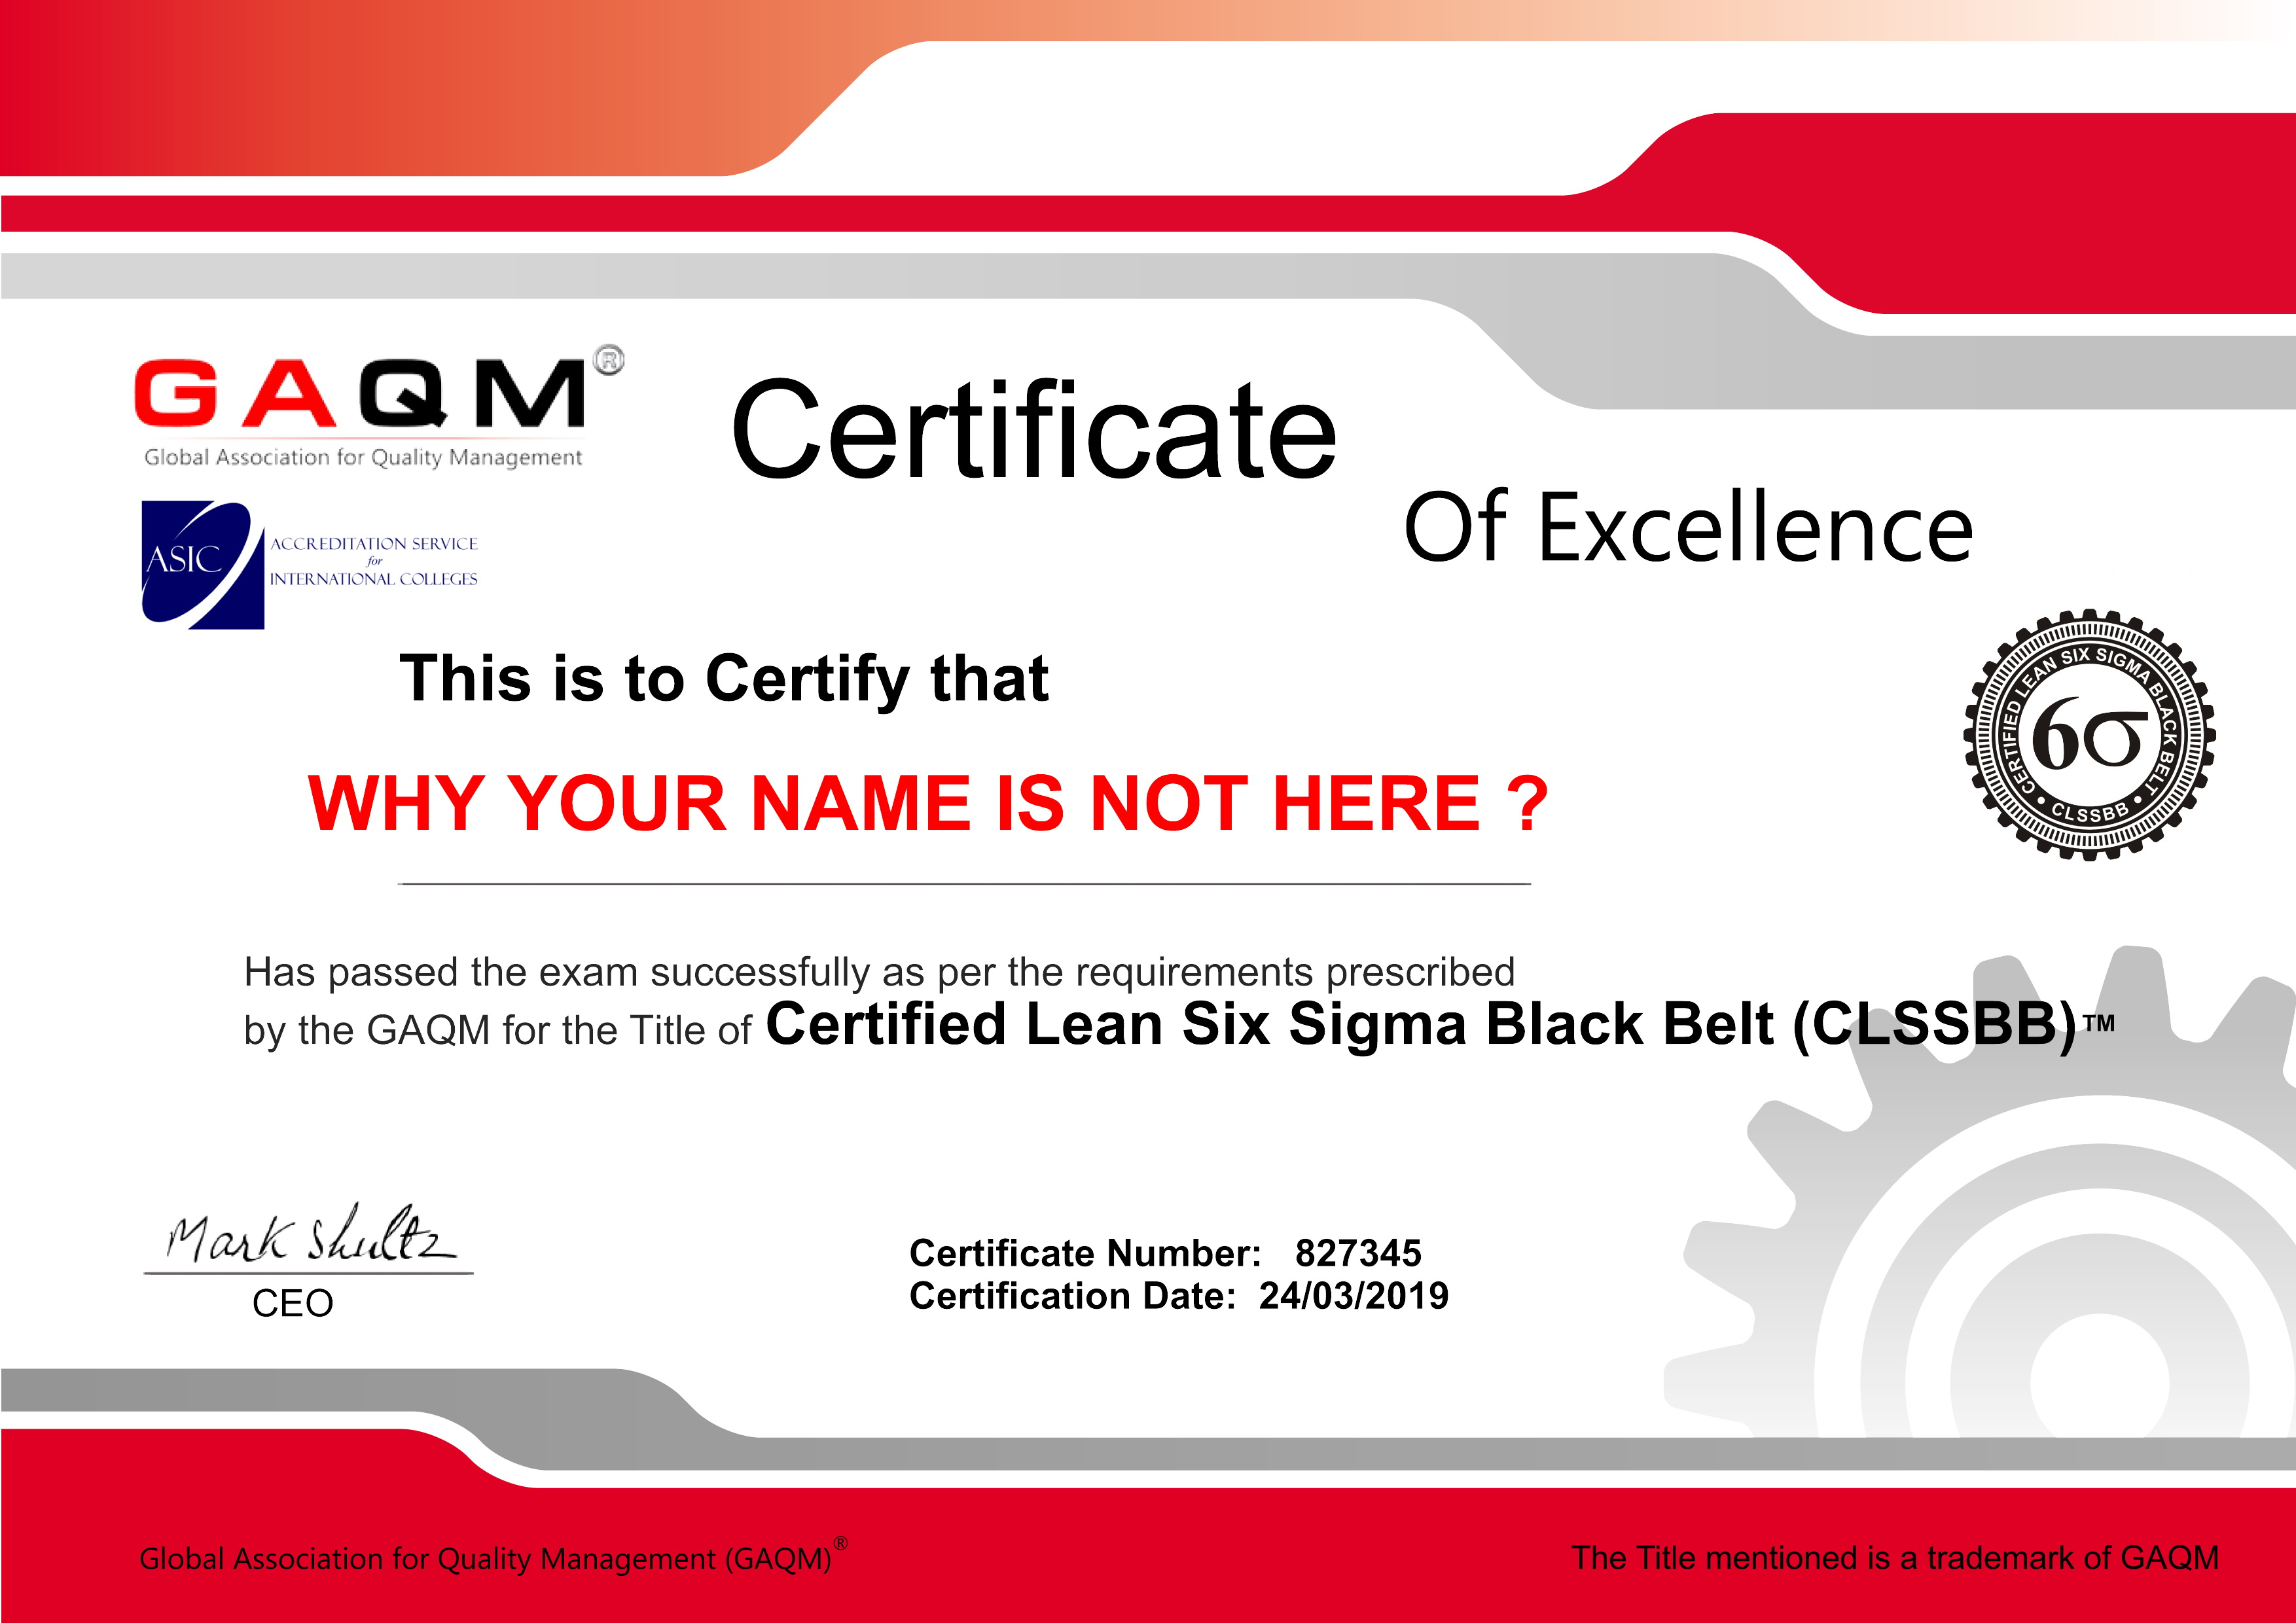 Lean Six Sigma Black Belt (CLSSBB) without training and without exam, only with certwizard.com